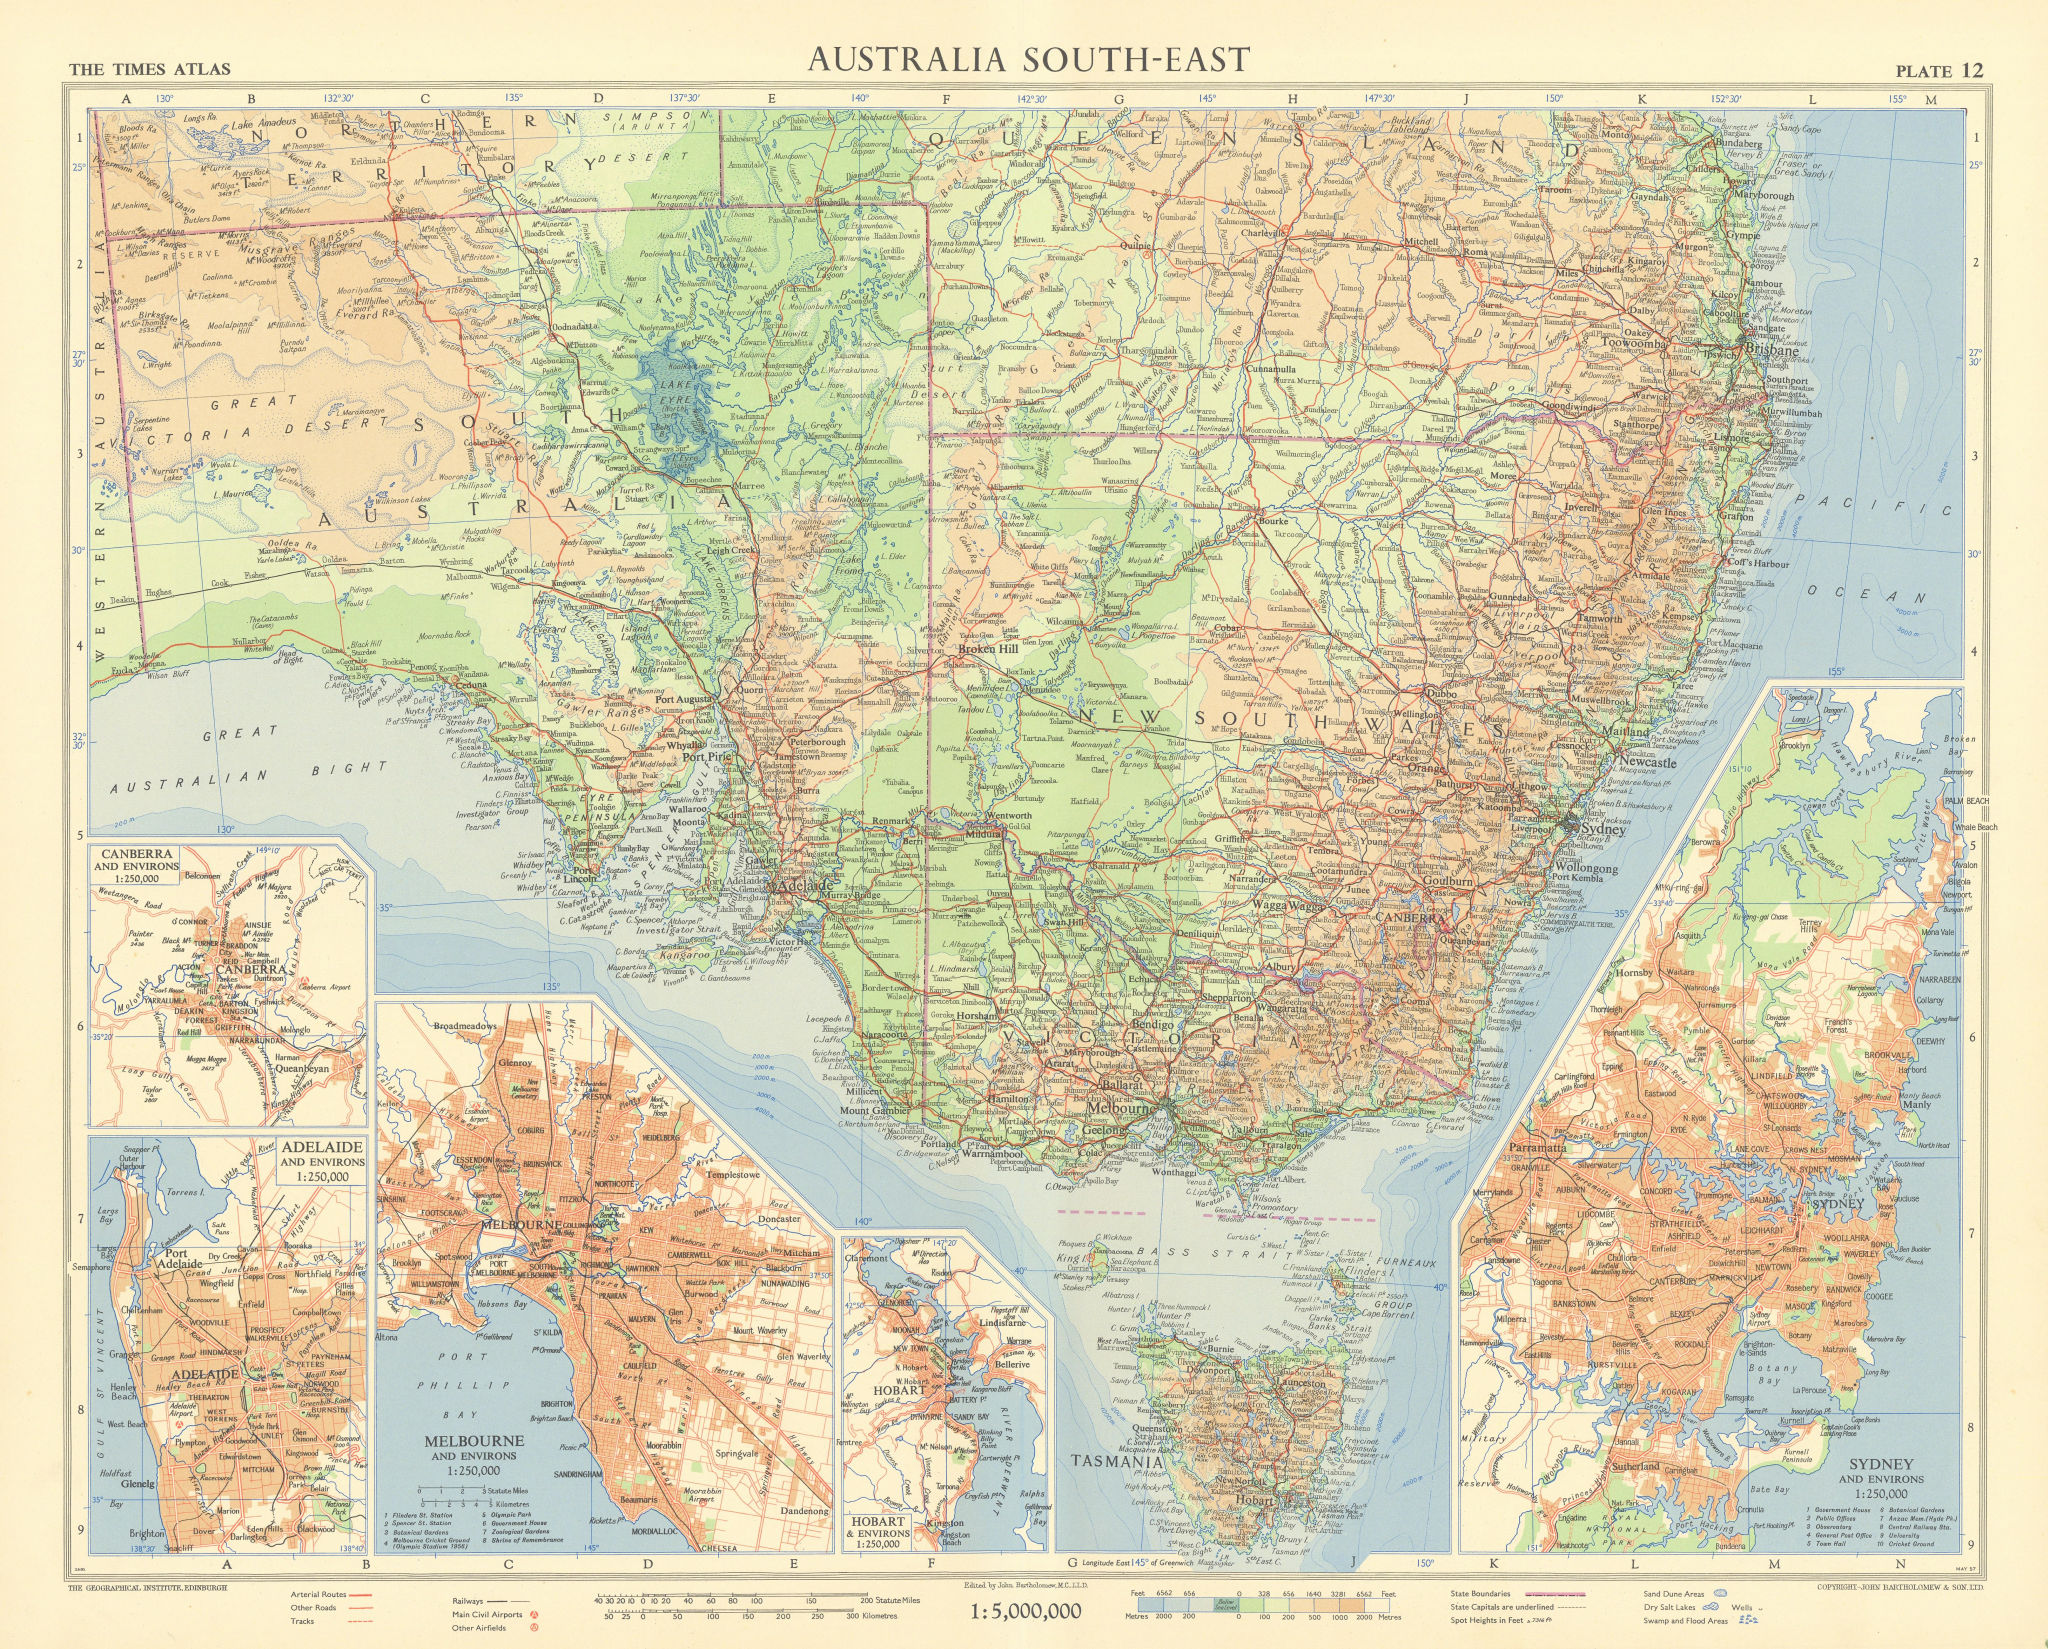 South Australia New South Wales Canberra Adelaide Melbourne TIMES 1958 old map